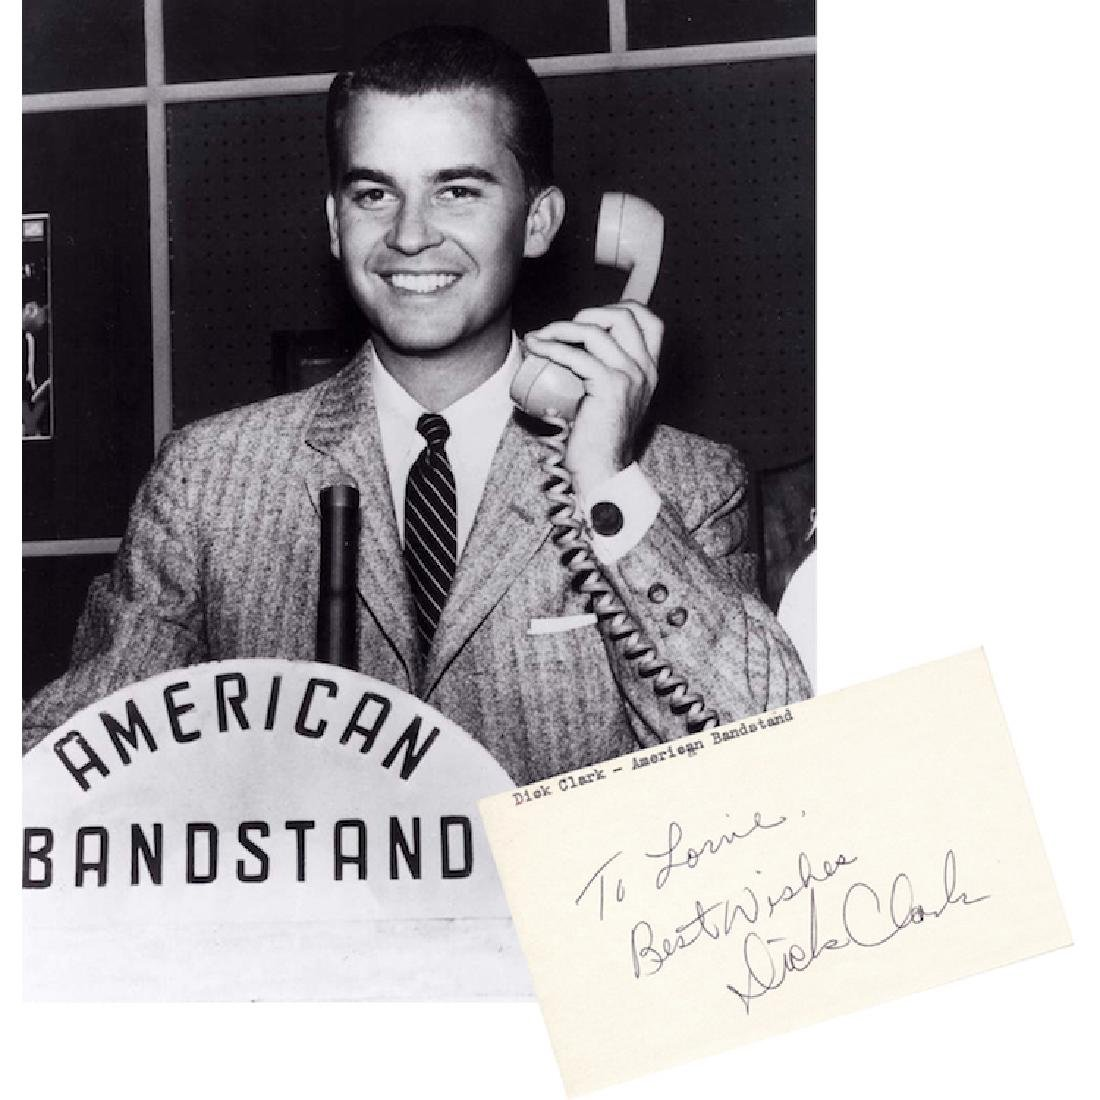 Dick Clark - American Bandstand - Autograph